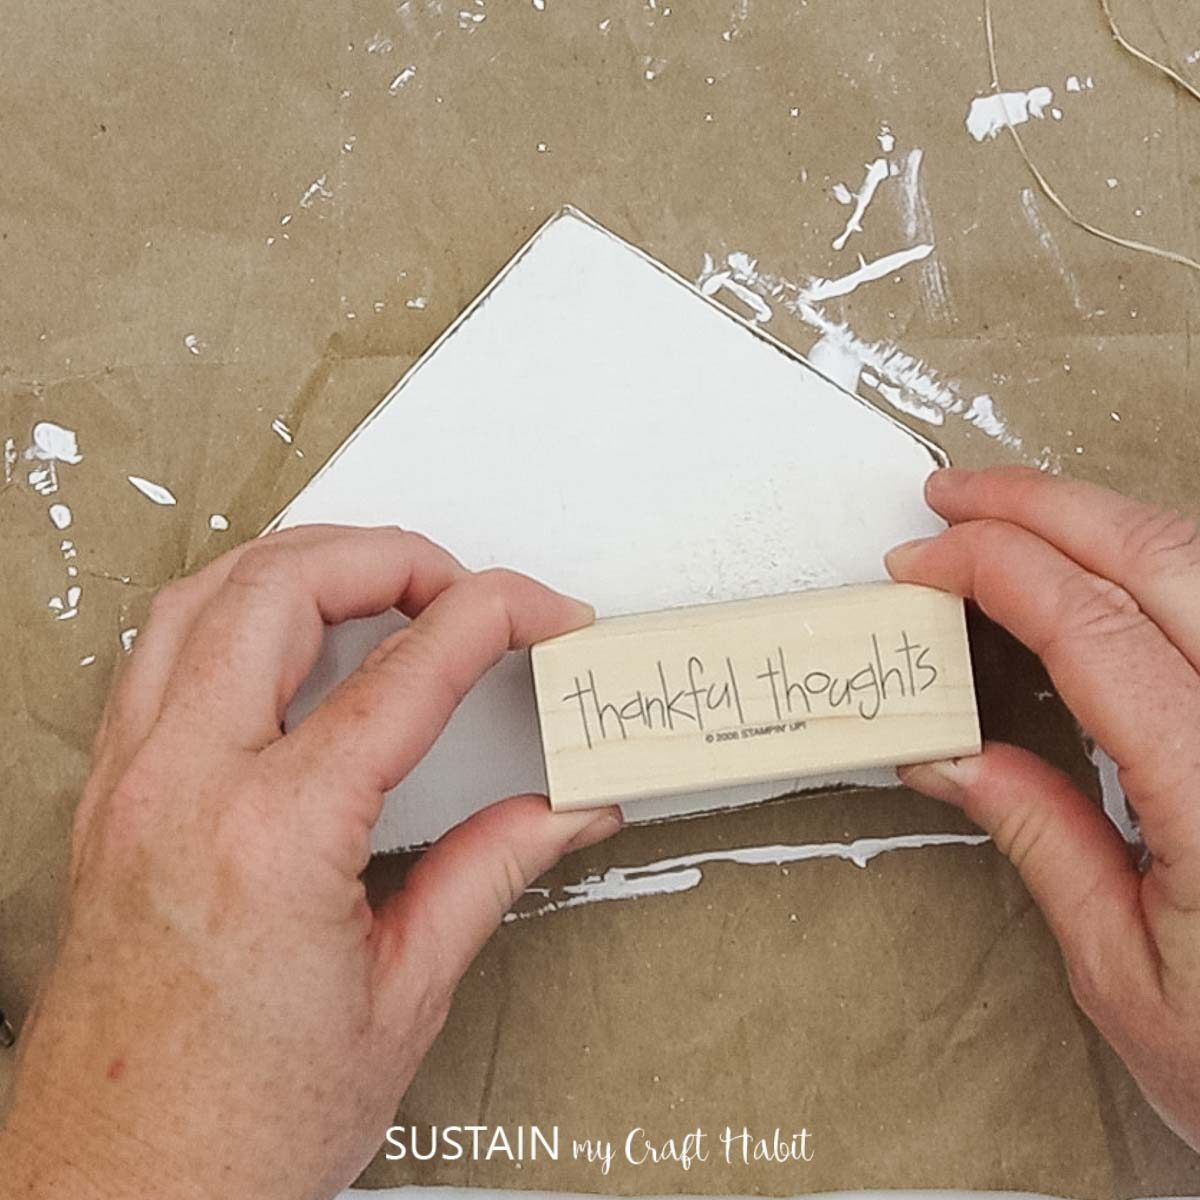 """Applying a """"thankful thoughts"""" rubber stamp to the painted scrap wood."""